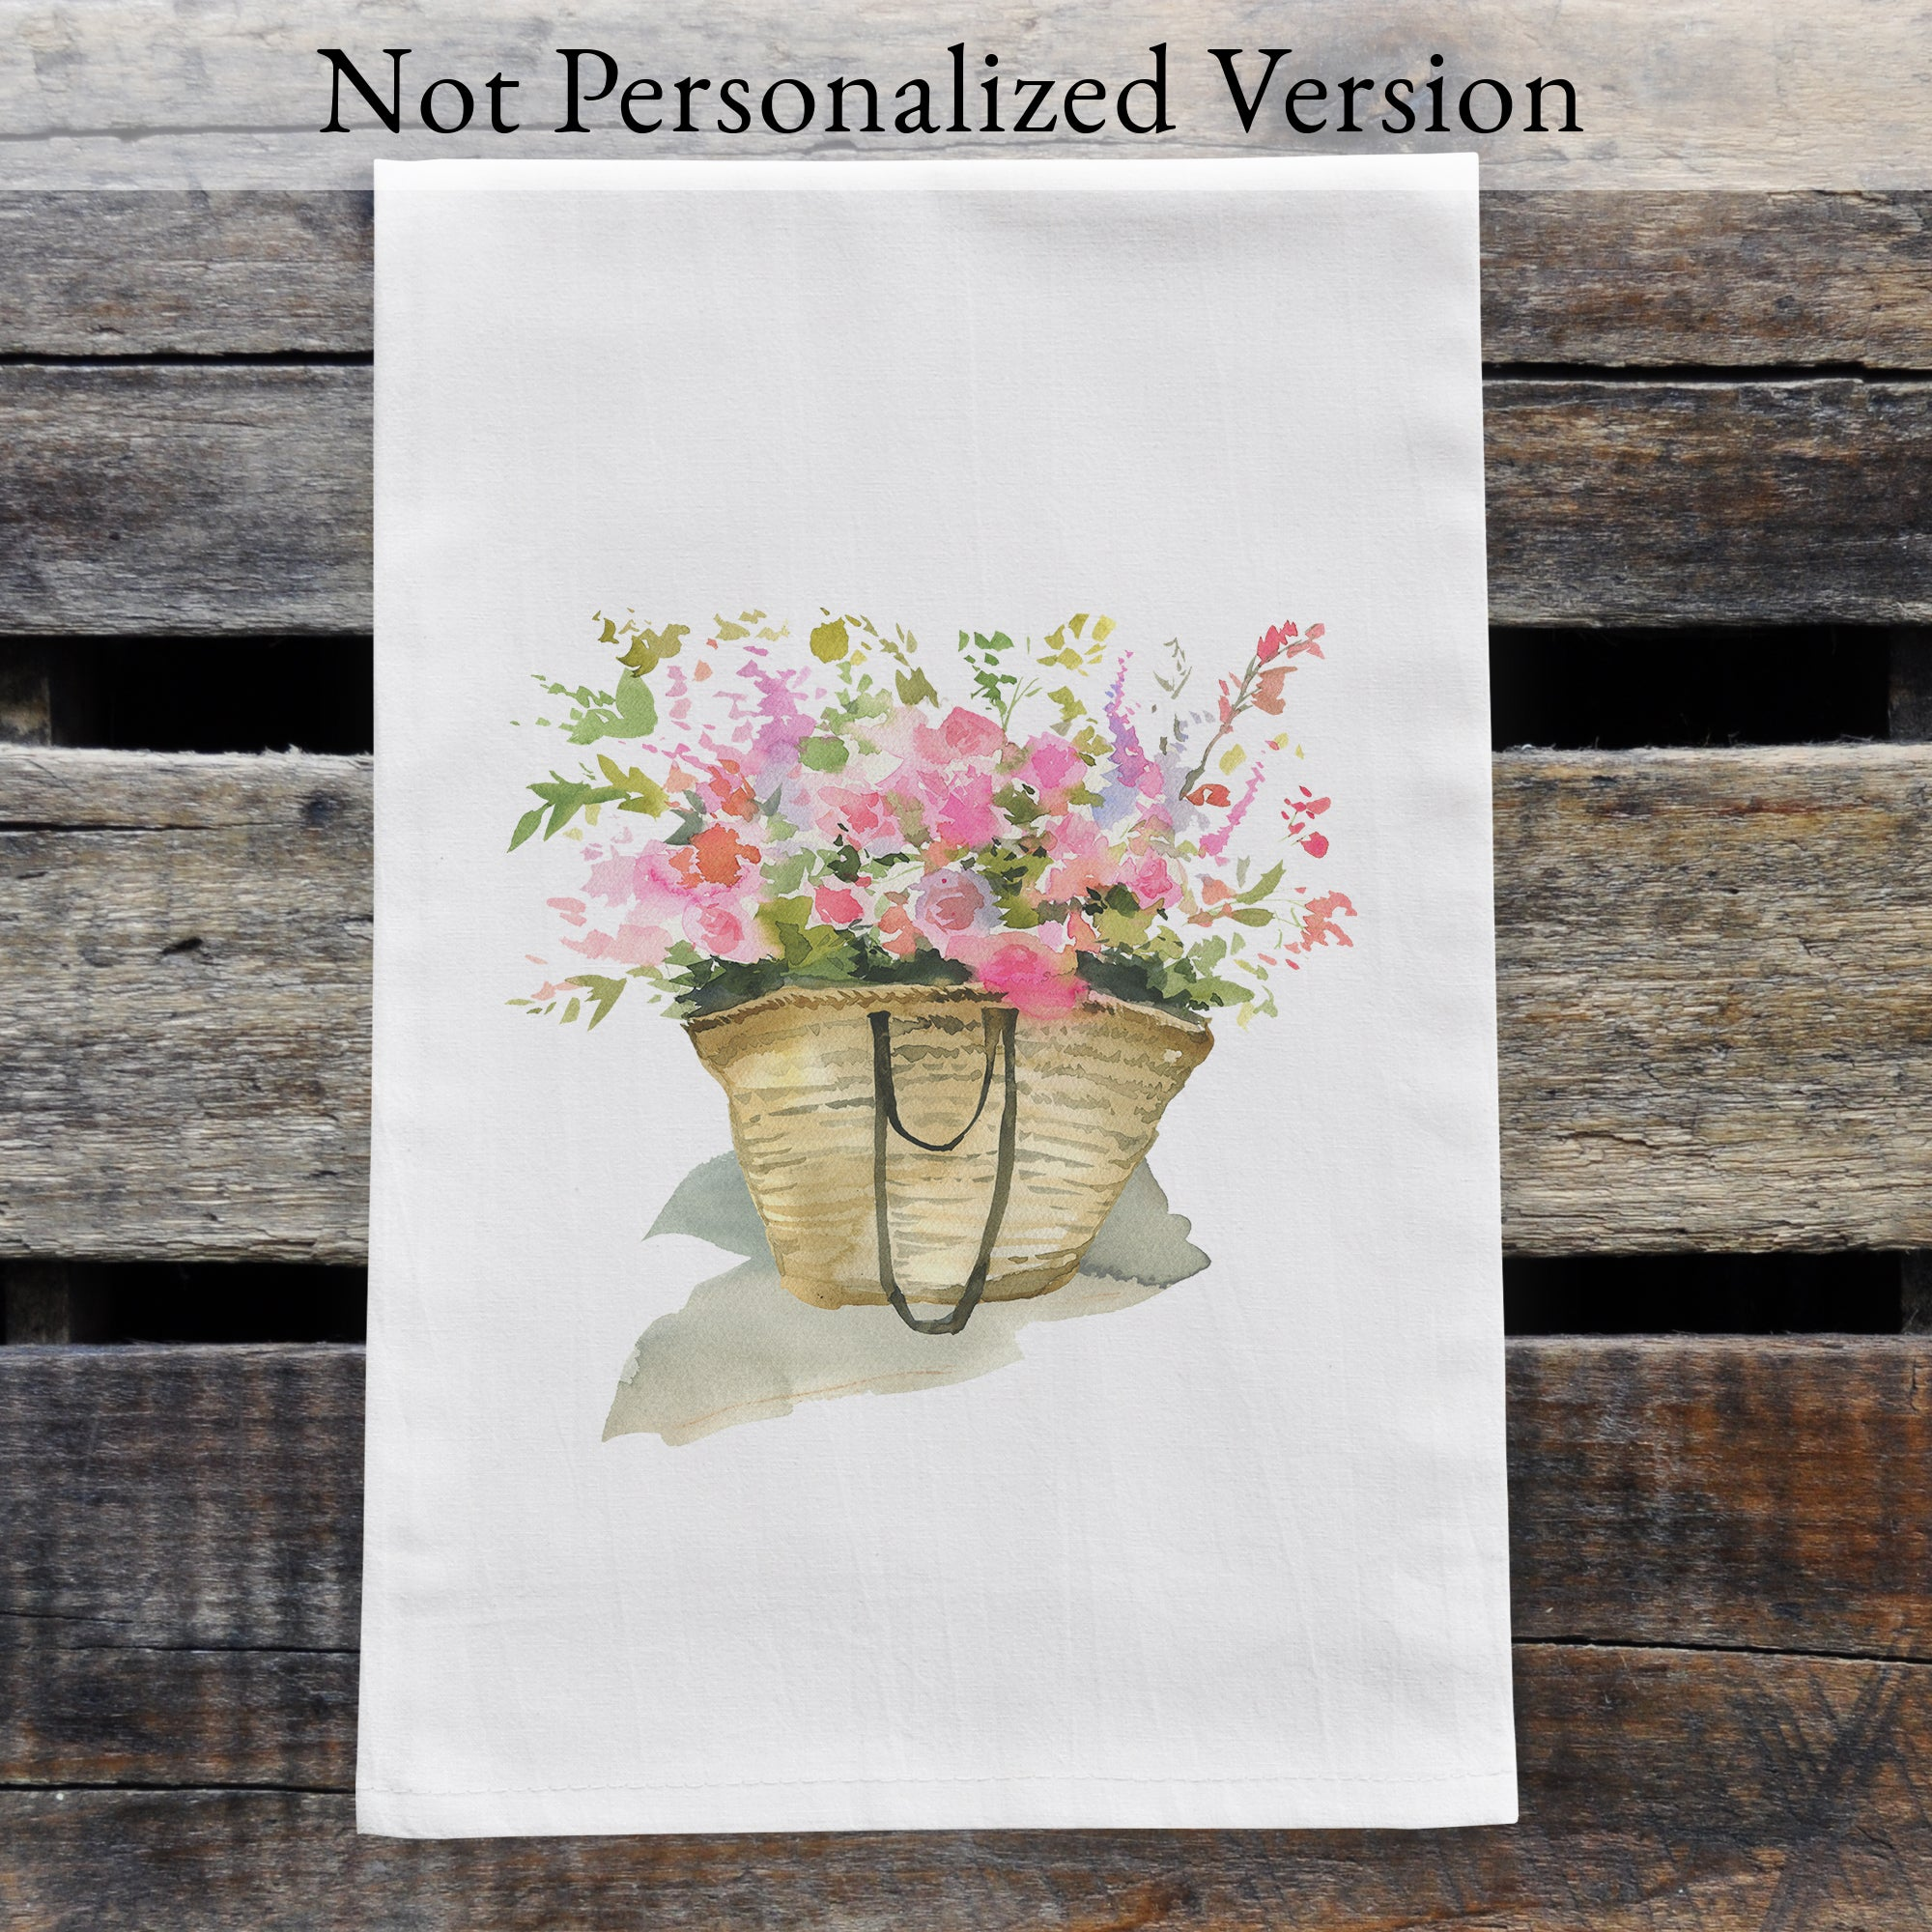 Personalized Wildflowers in Straw Market Bag Design Watercolor Design Flour Sack Tea Towel